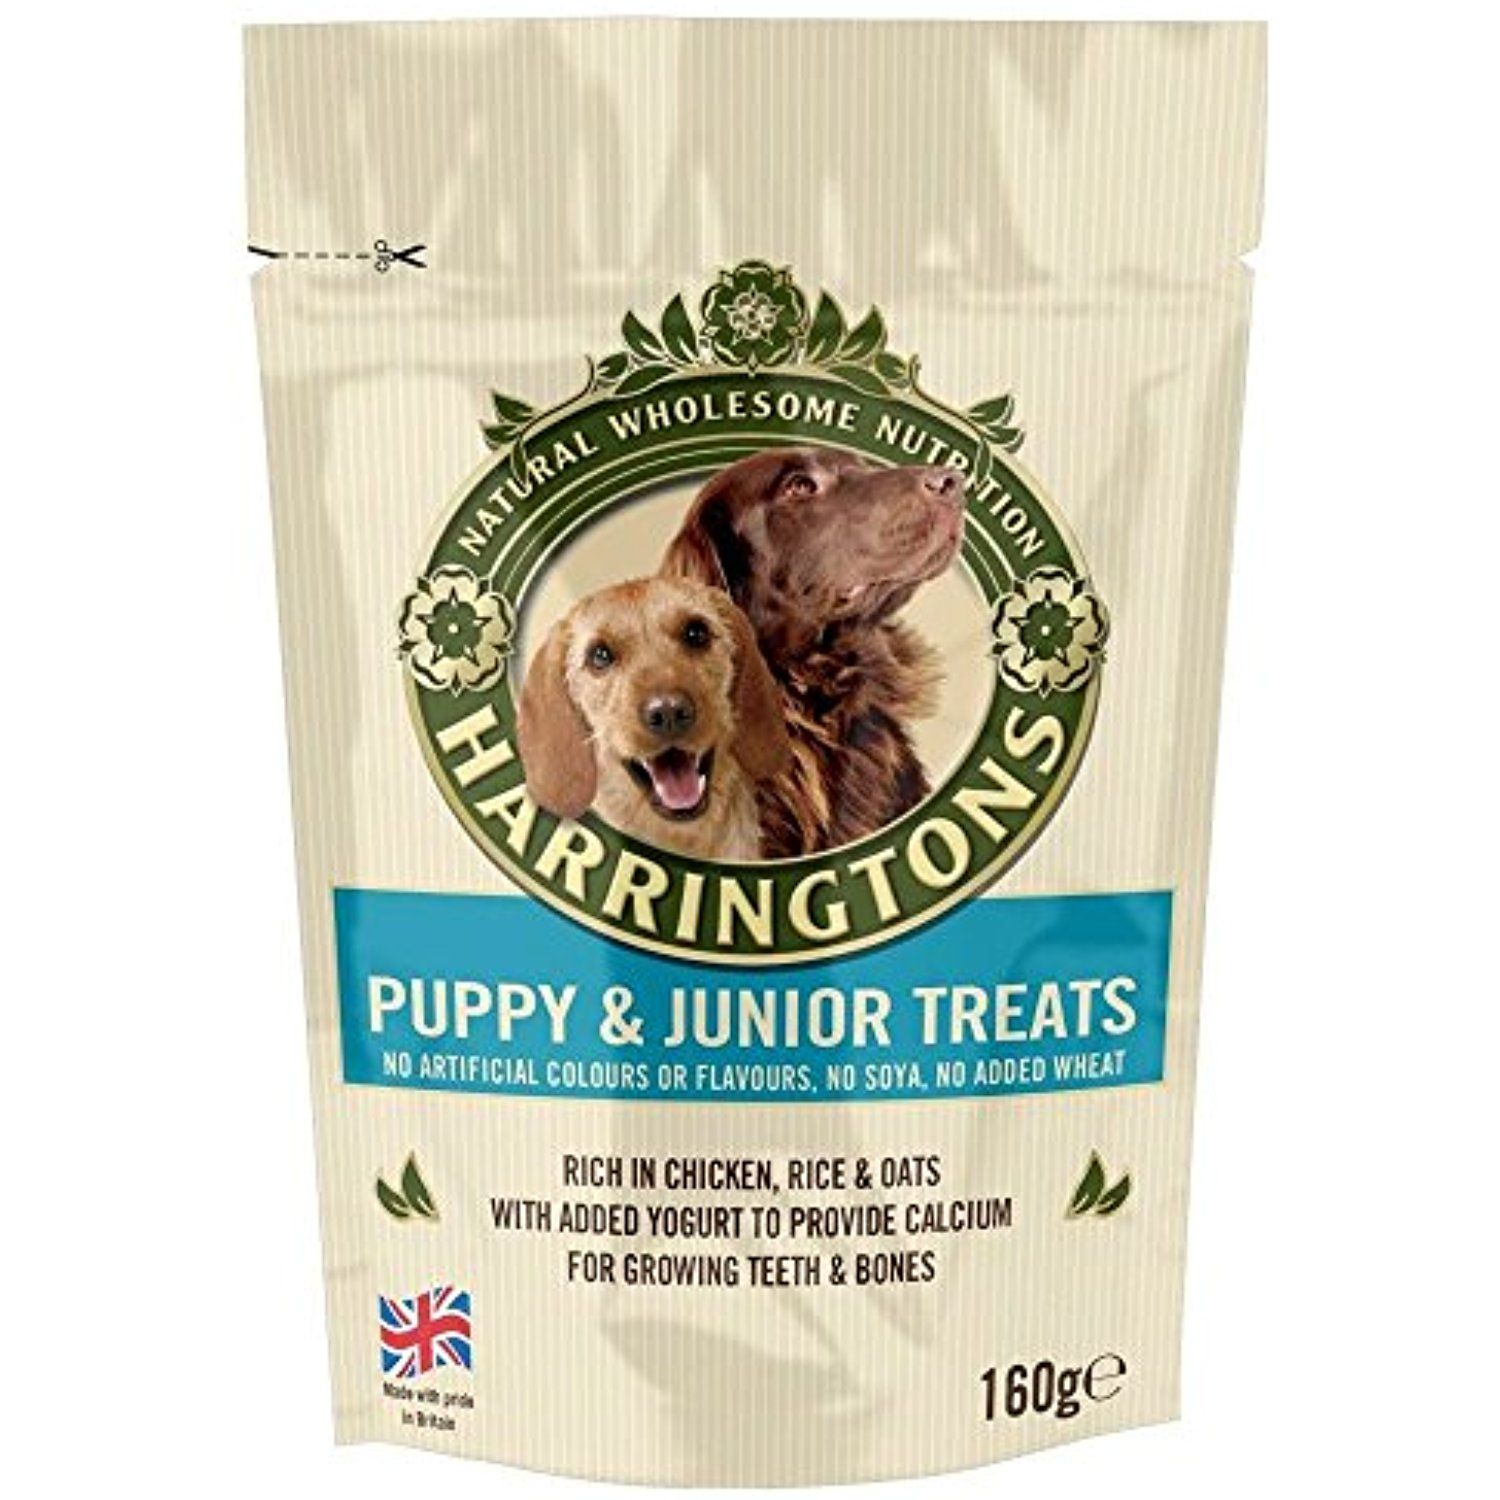 Harringtons Puppy Treats 160g You Can Visit The Image Link